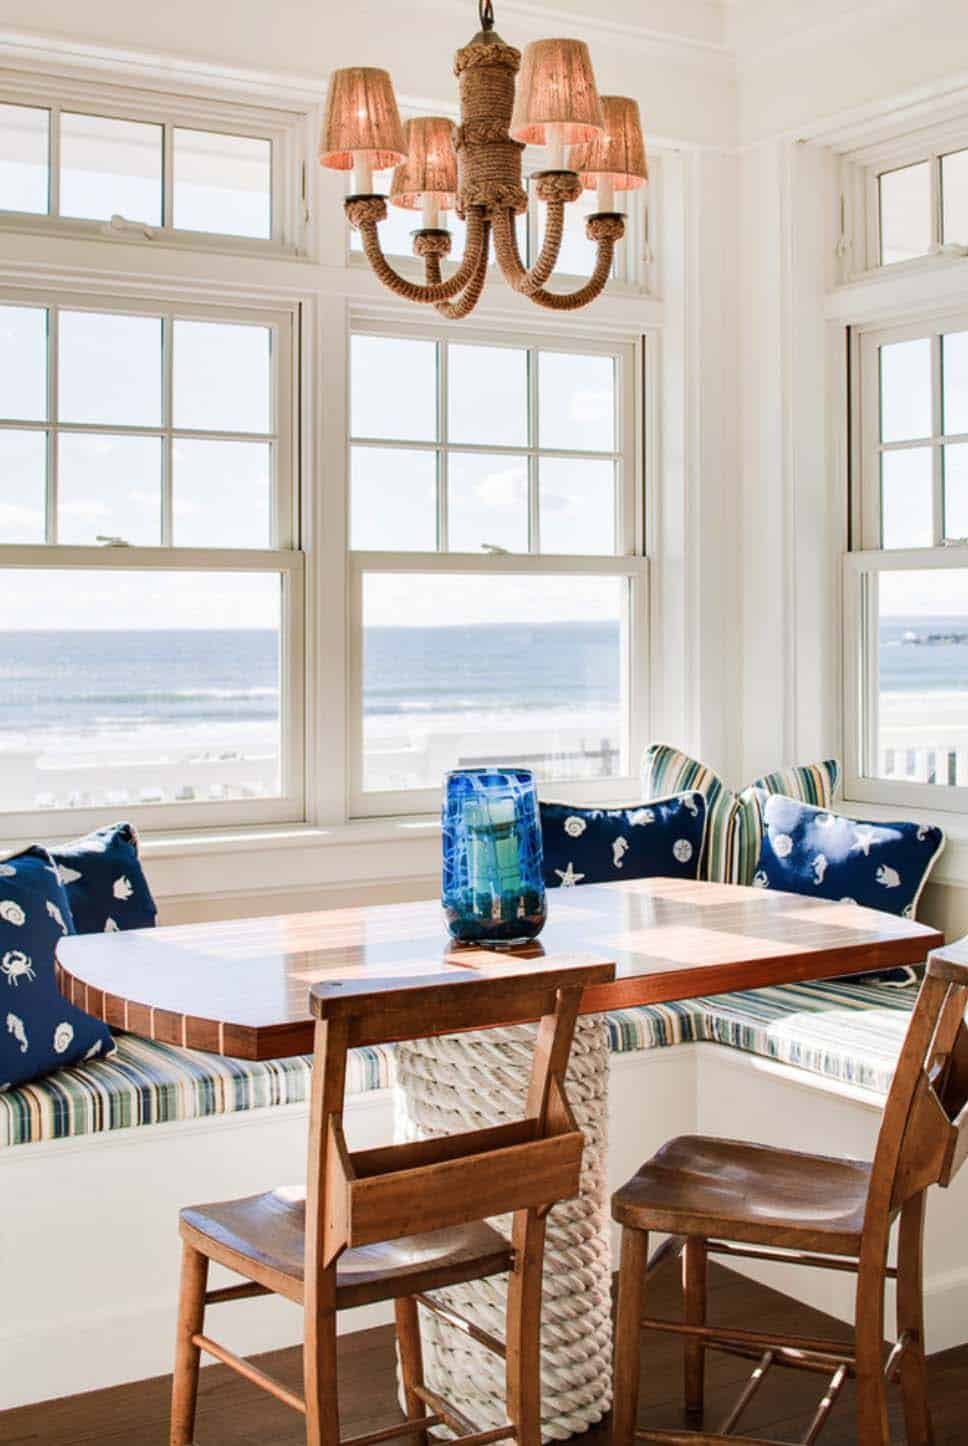 Dreamy seaside home in Maine with New England style architecture